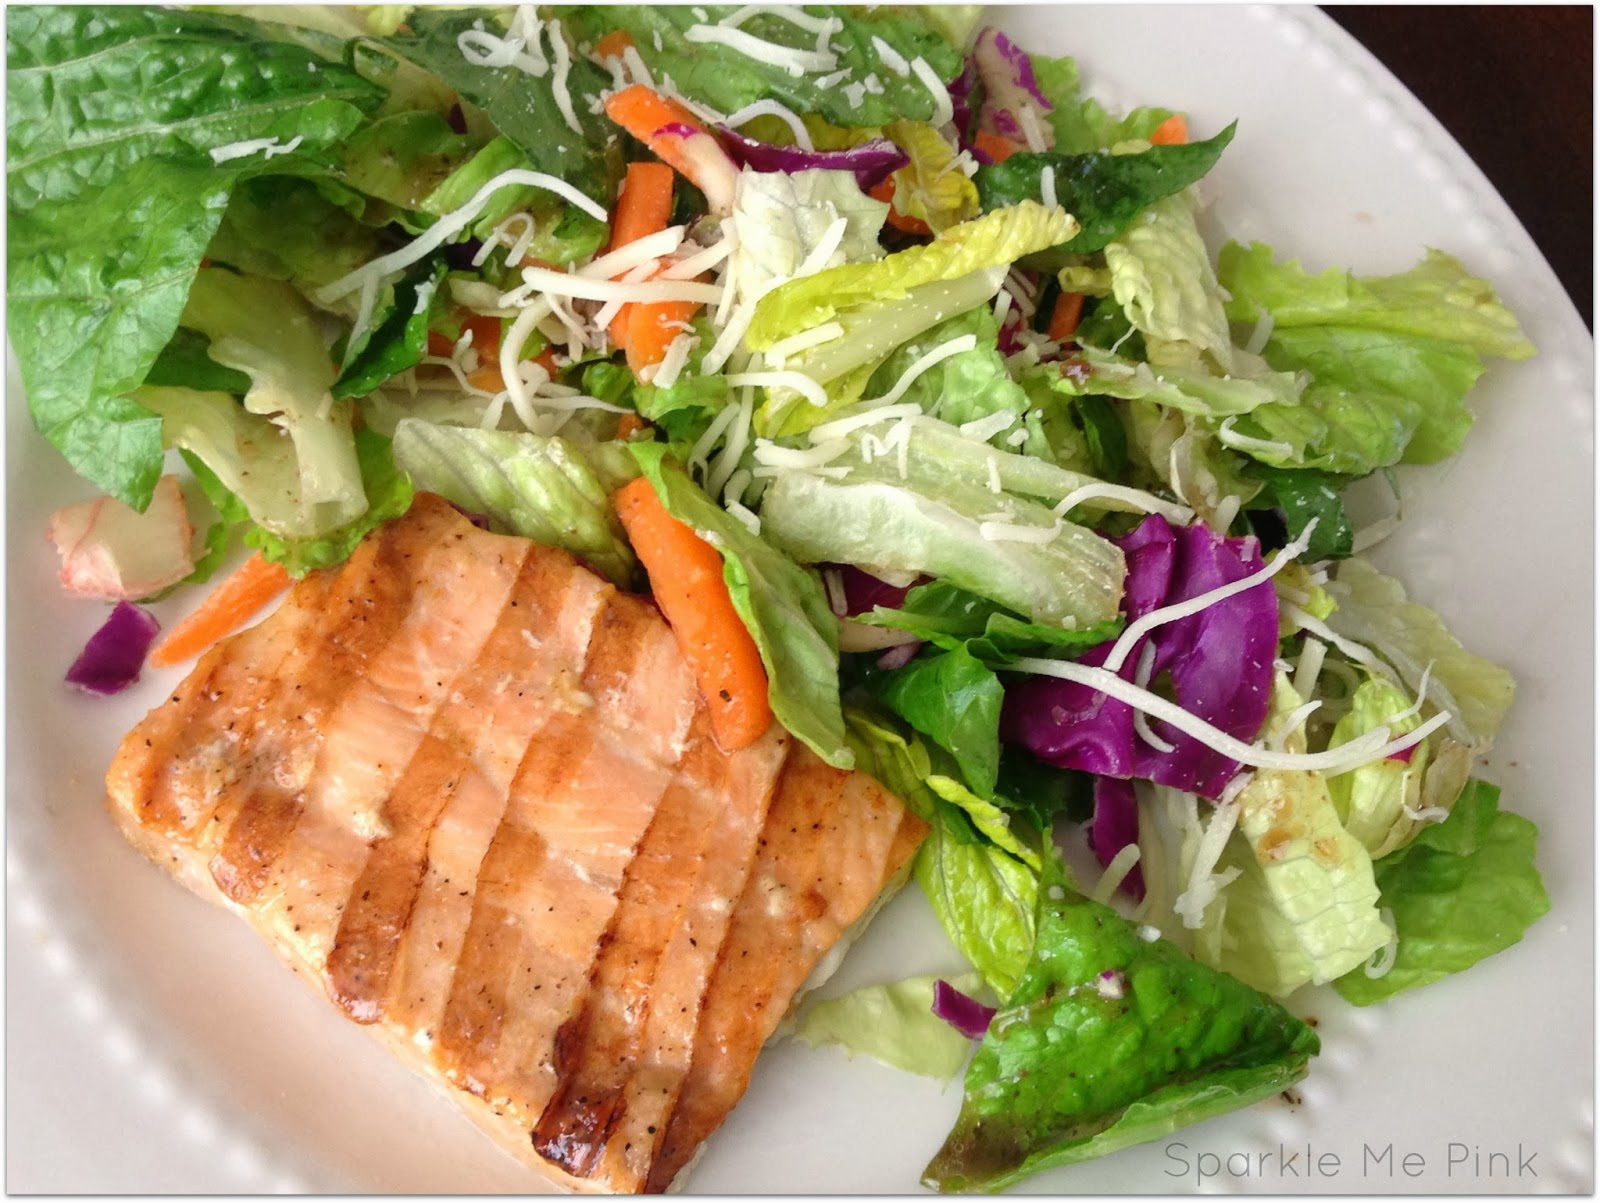 Sparkle me pink grilled salmon salad delicious healthy for Fish and salad